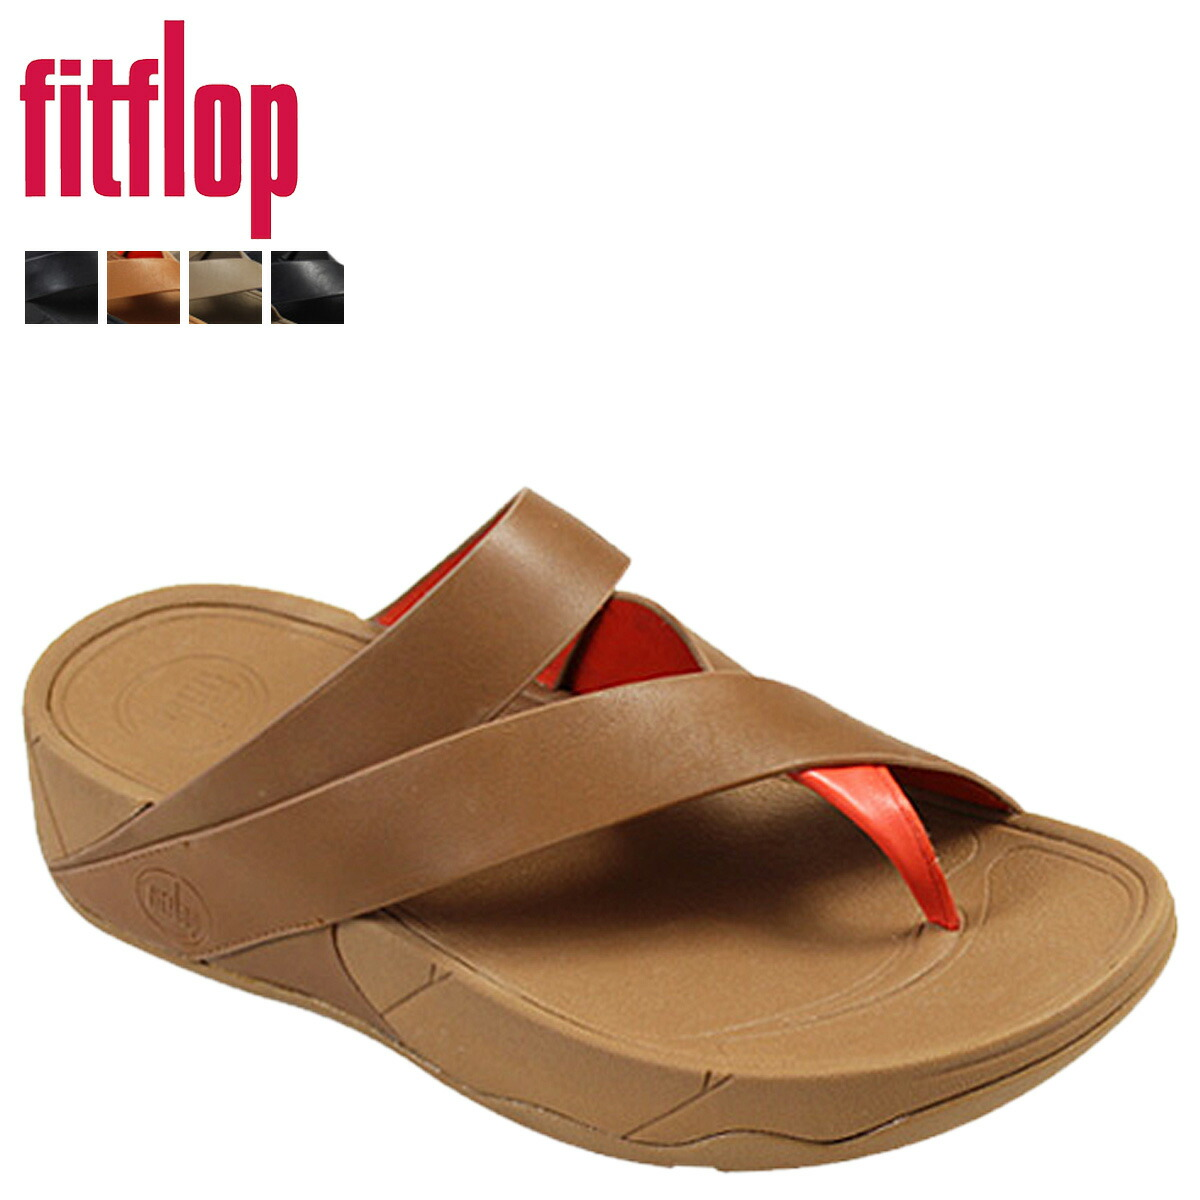 fitflop sling leather women